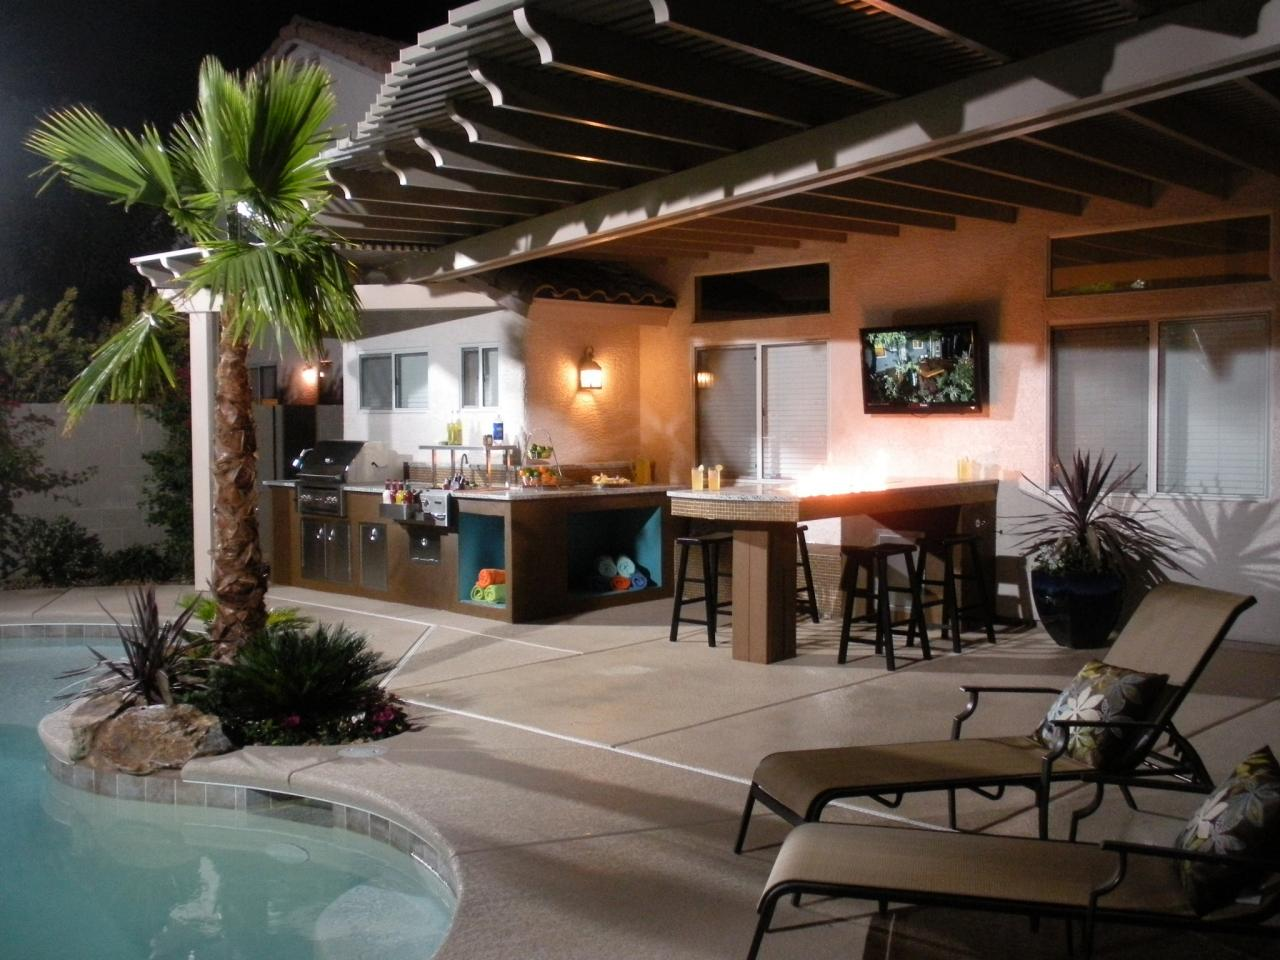 Outdoor Kitchen - Designing The Perfect Backyard Cooking ... on Patio Kitchen id=62058